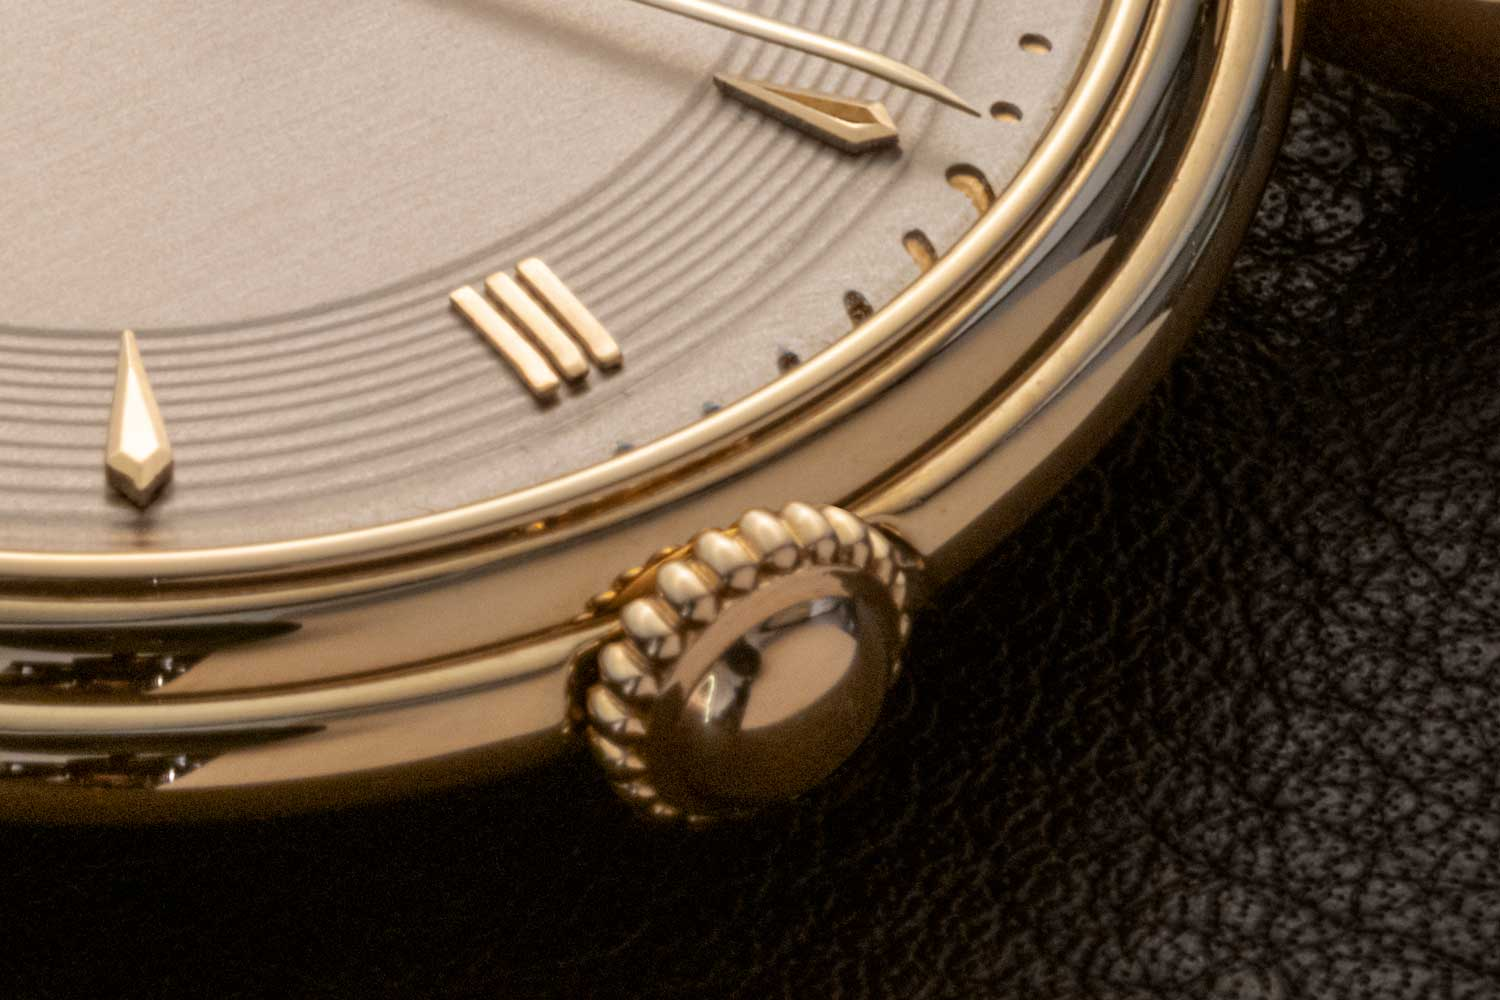 Stunning oversized crown with large oval shaped bead on the Reference 4261 Minute Repeater (©Revolution)